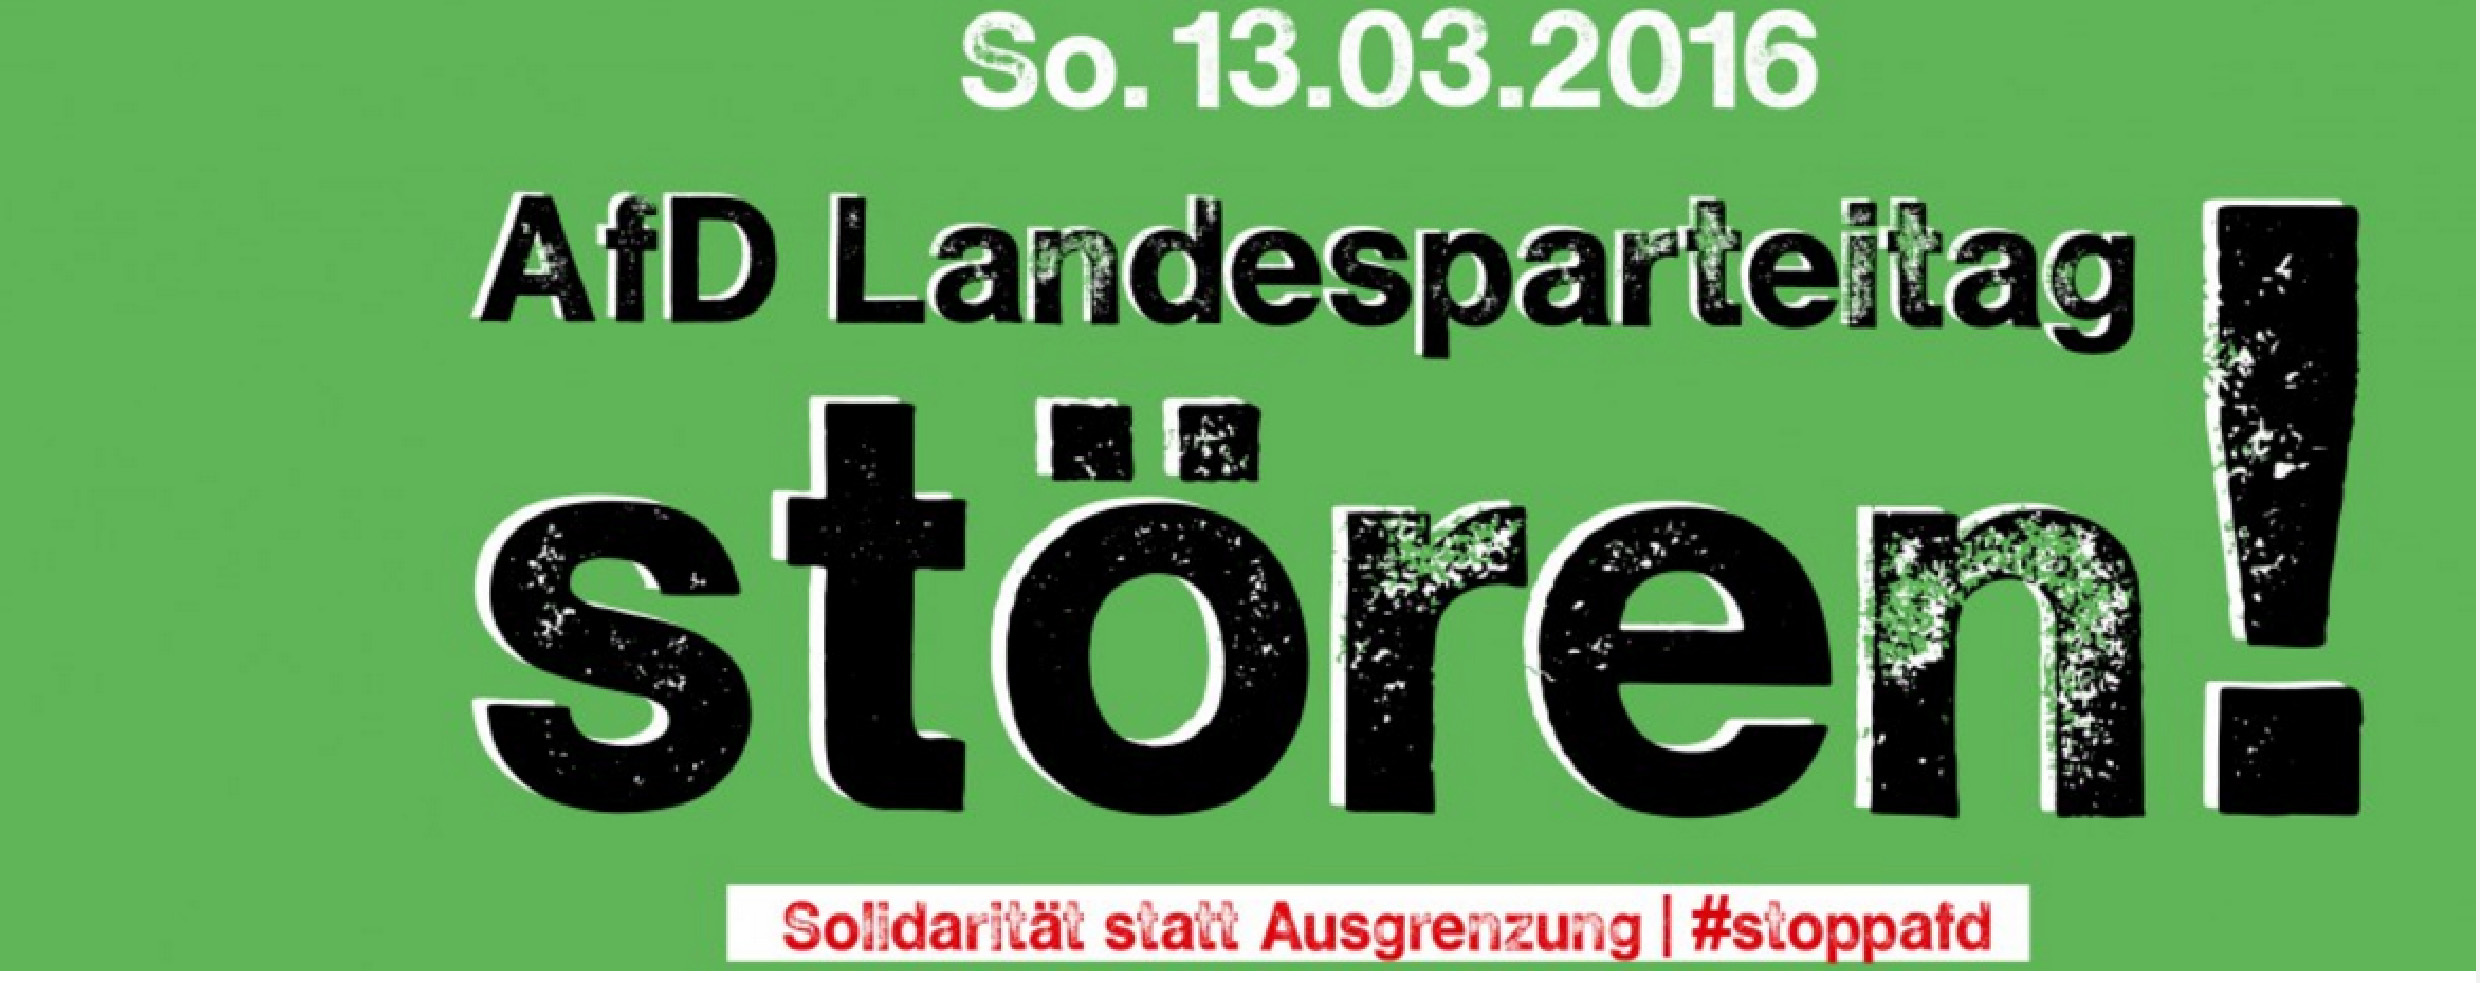 stopp afd!